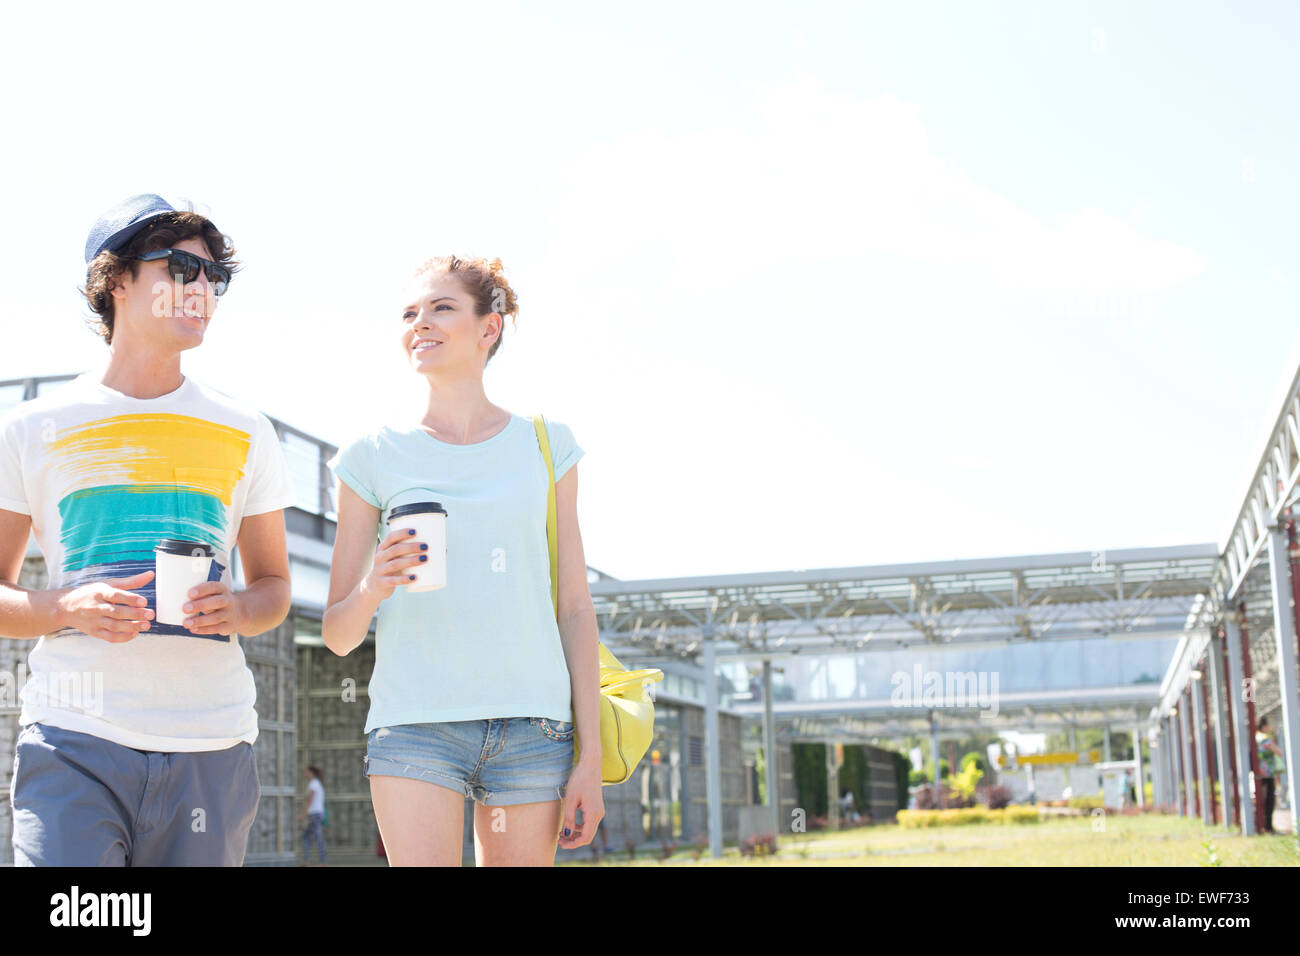 Couple holding disposable cups while walking at park - Stock Image